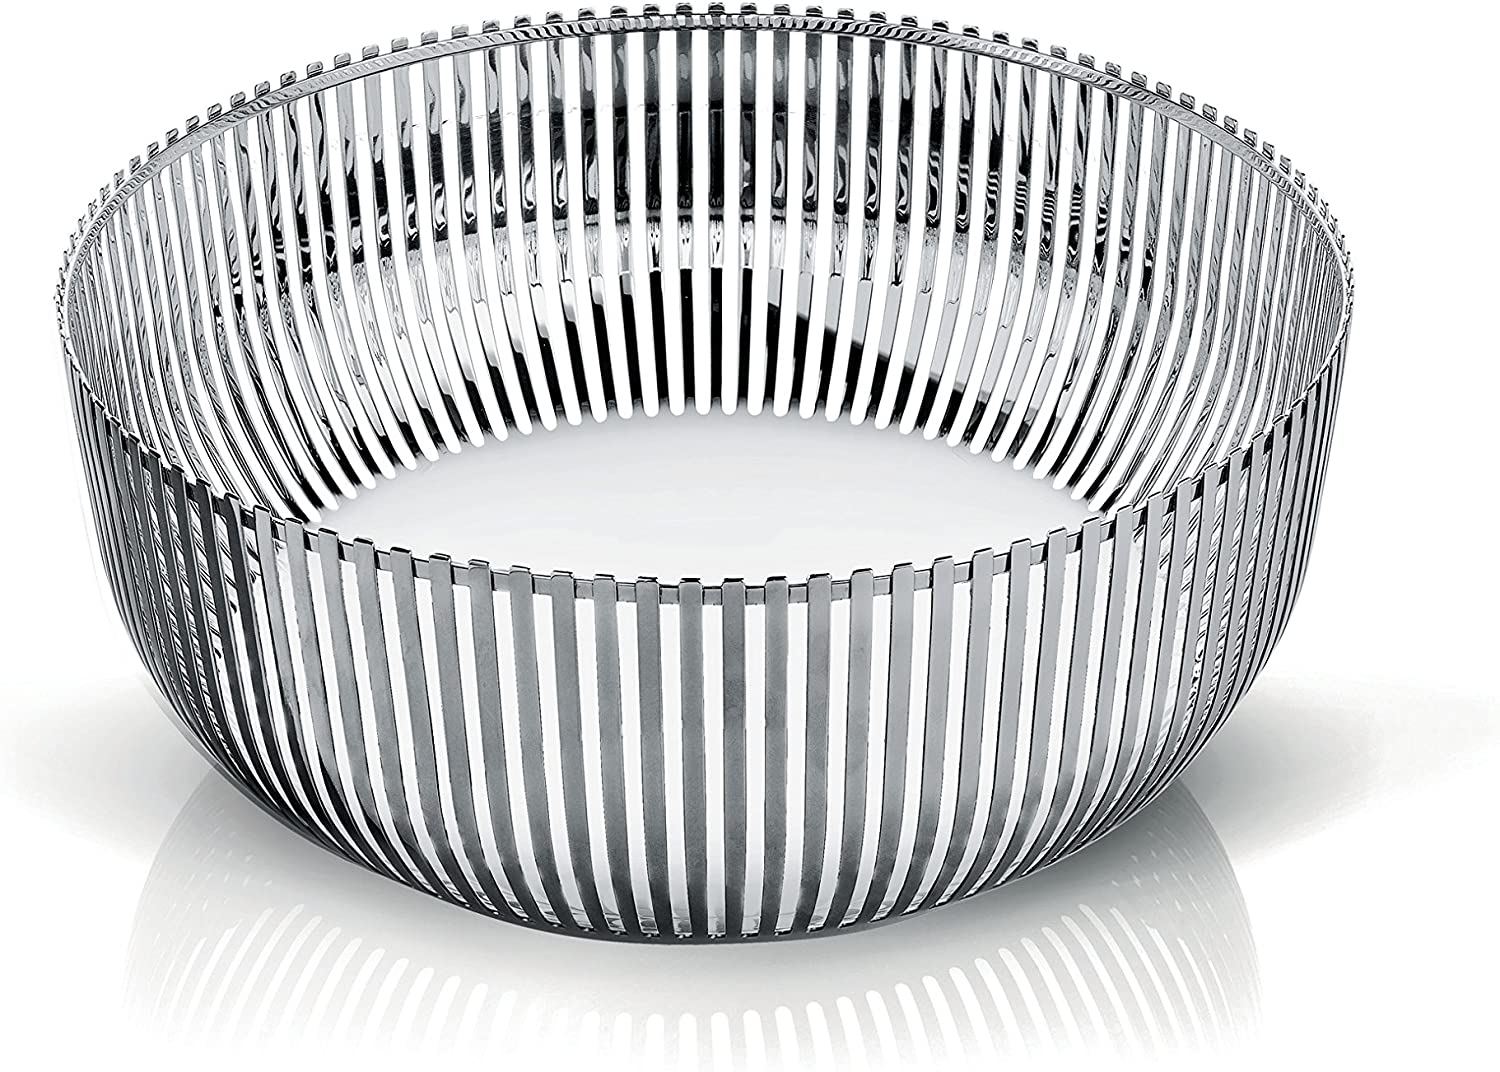 Alessi Fruit Bowl in 18/10 Stainless Steel Mirror Polished, Silver